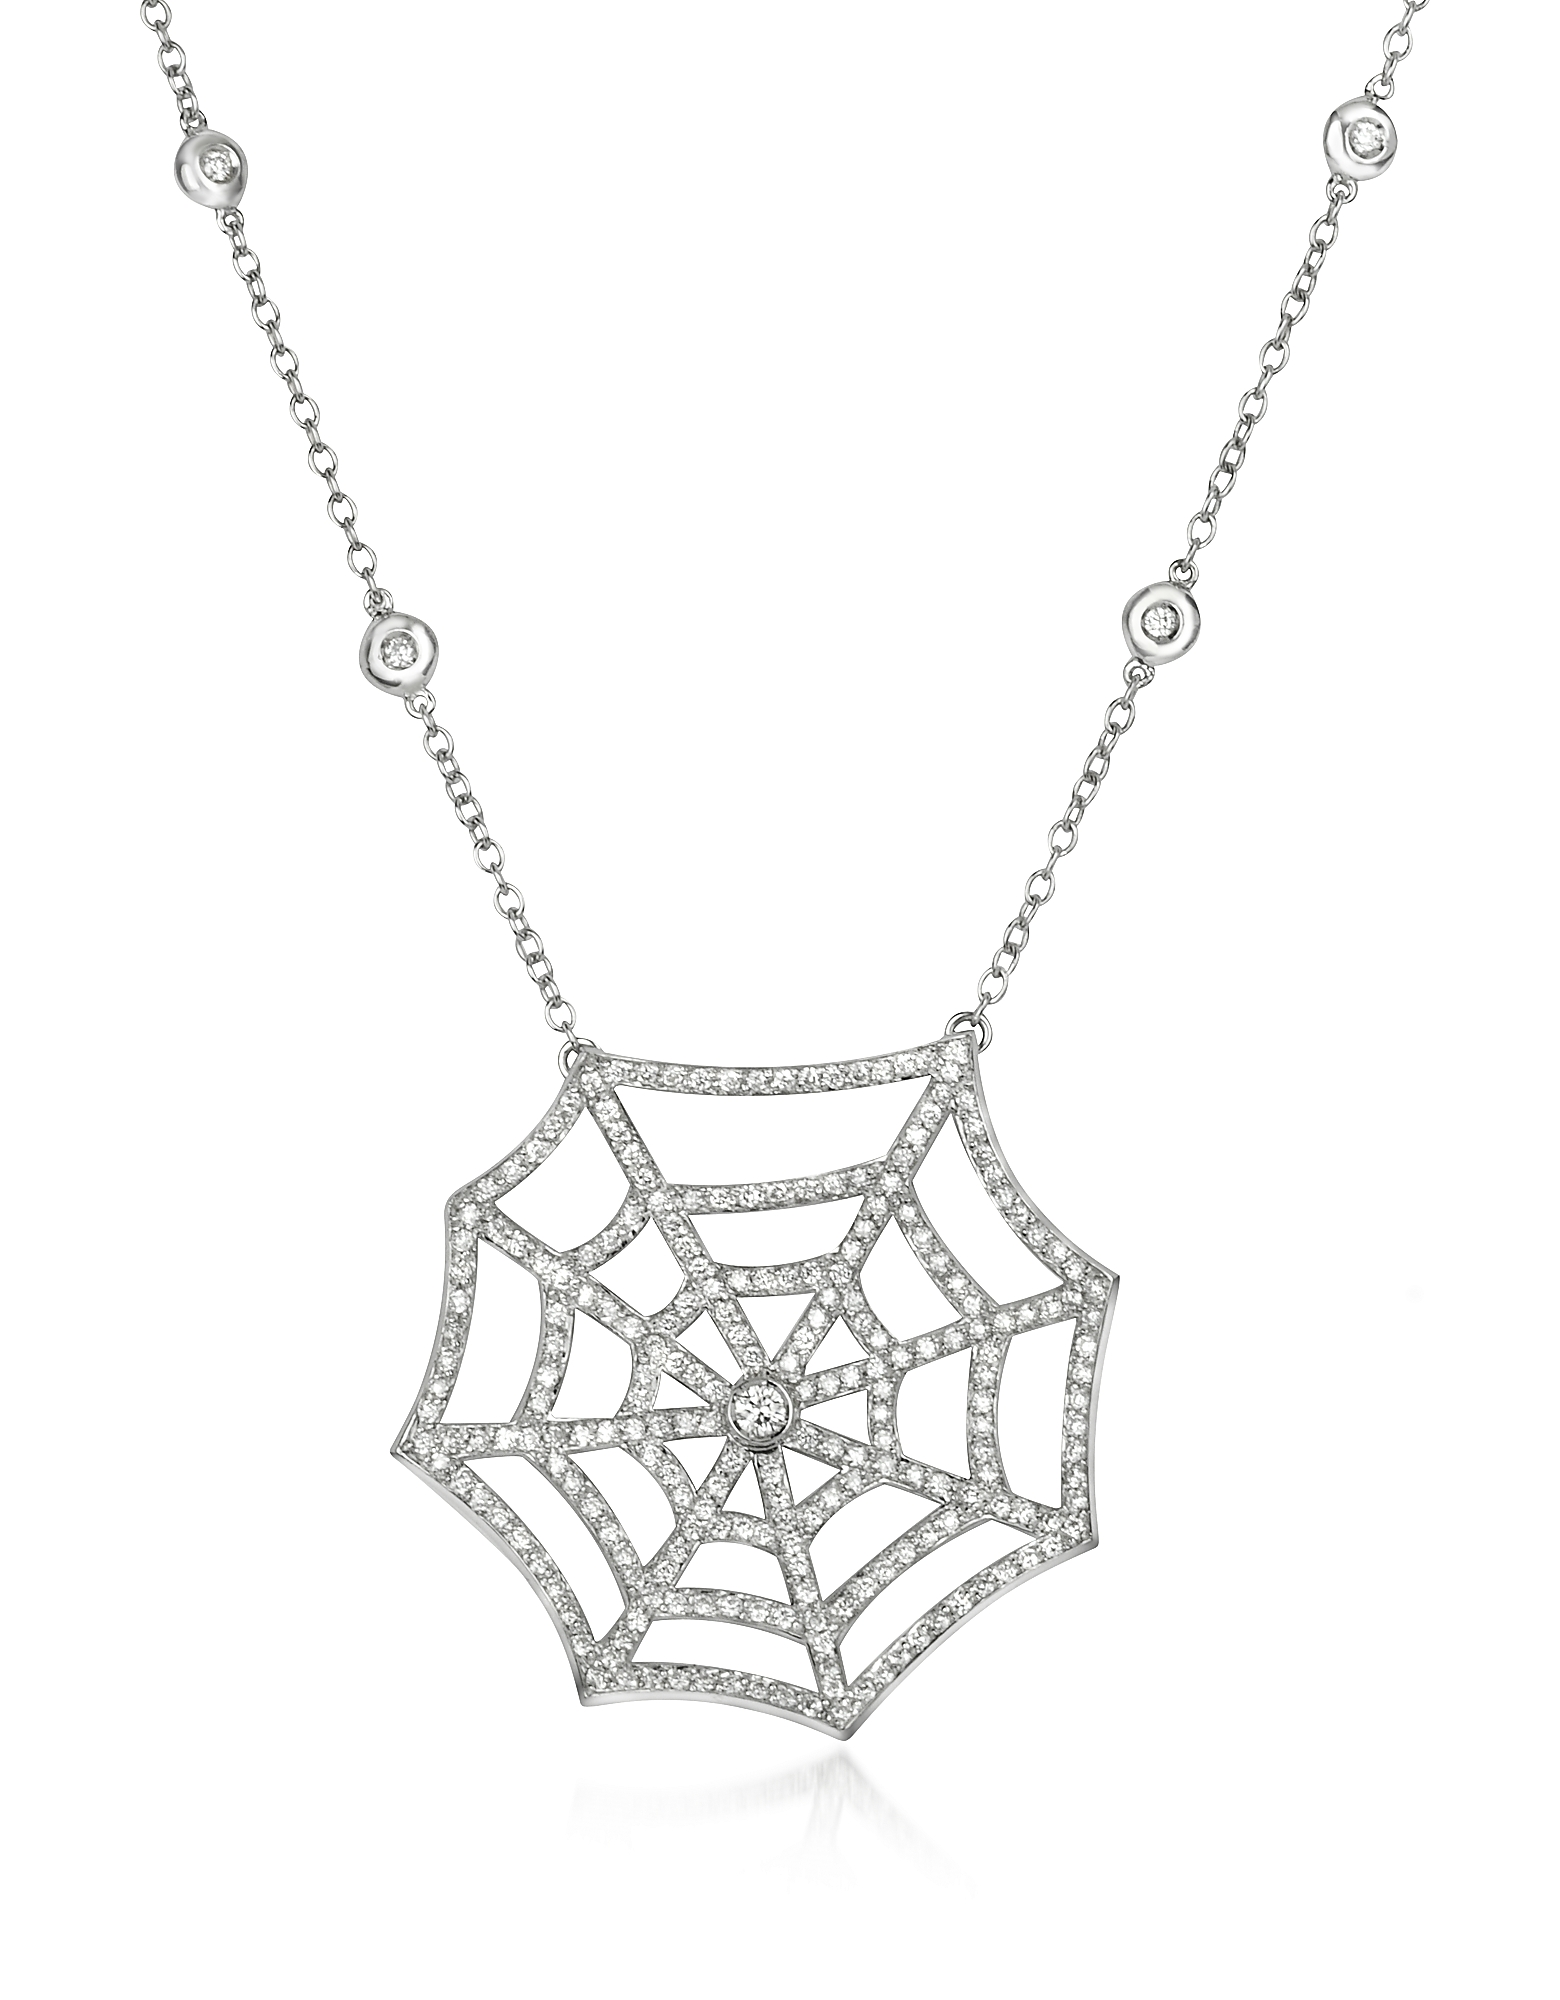 Incanto Royale Necklaces, 1.89 ctw Diamond 18K Gold Necklace